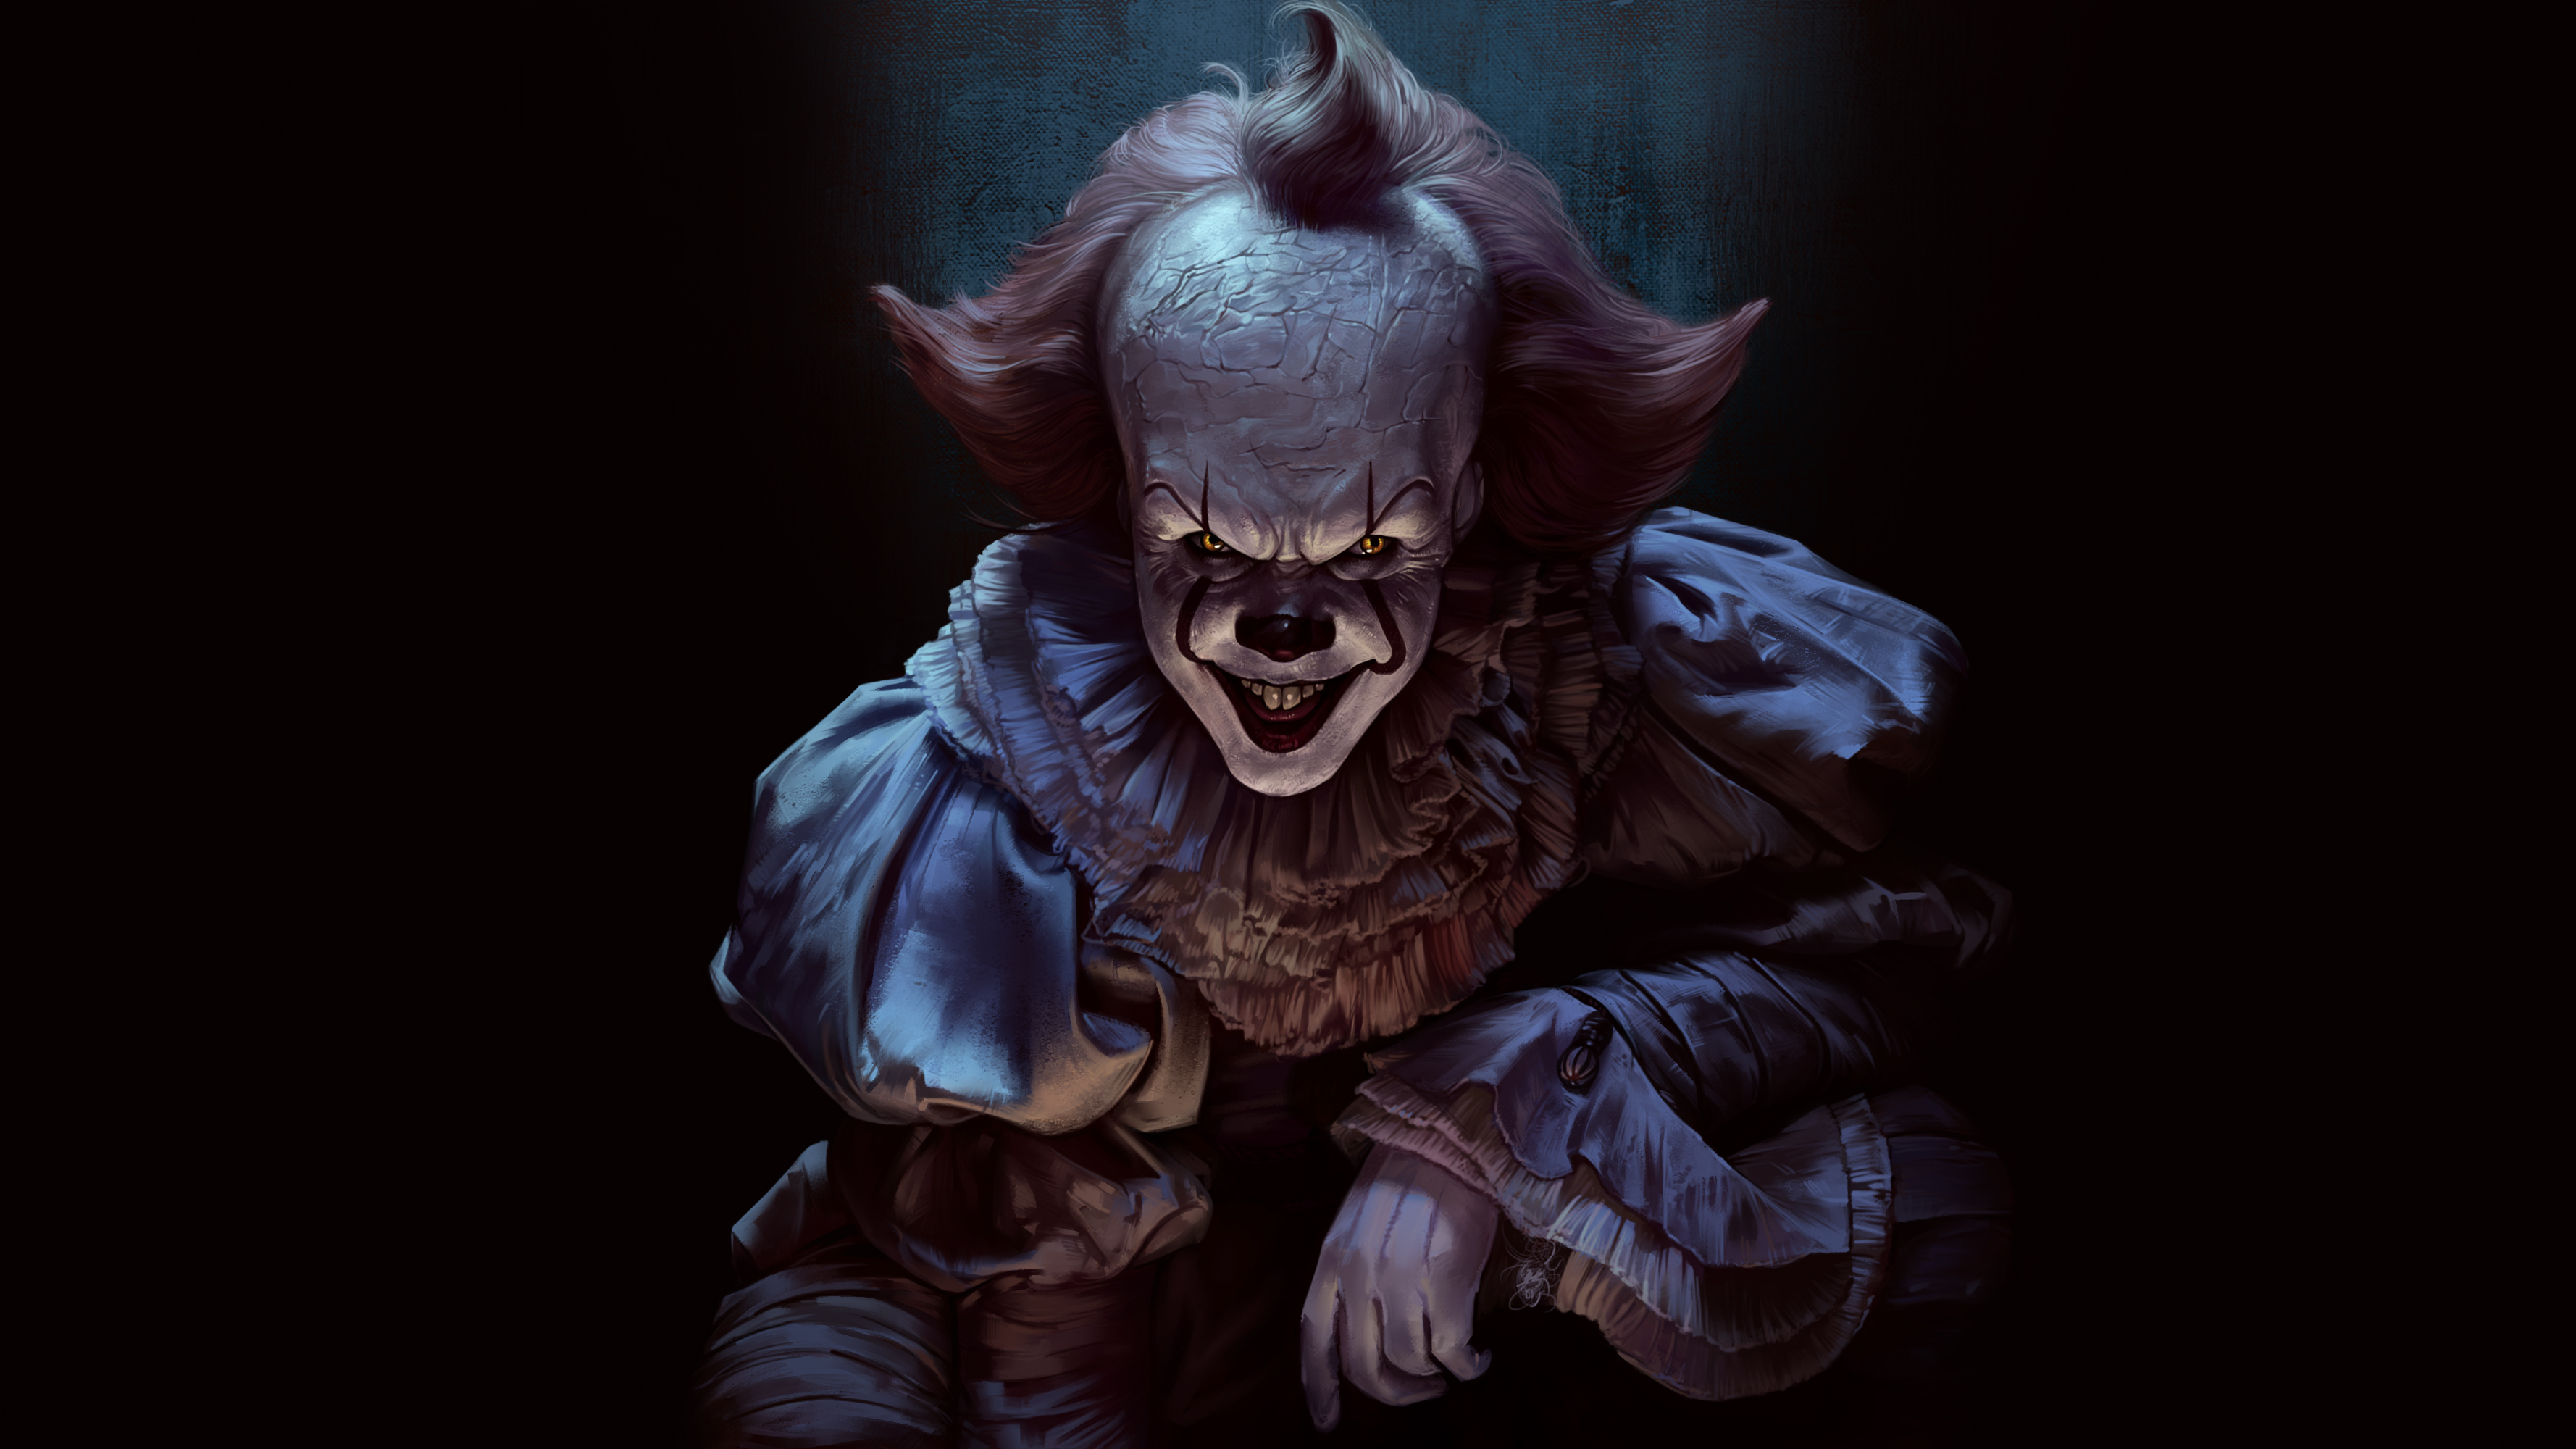 1440x2960 pennywise joker 4k samsung galaxy note 9 8 s9 s8 s8 qhd hd 4k wallpapers images - 3d wallpaper for note 8 ...